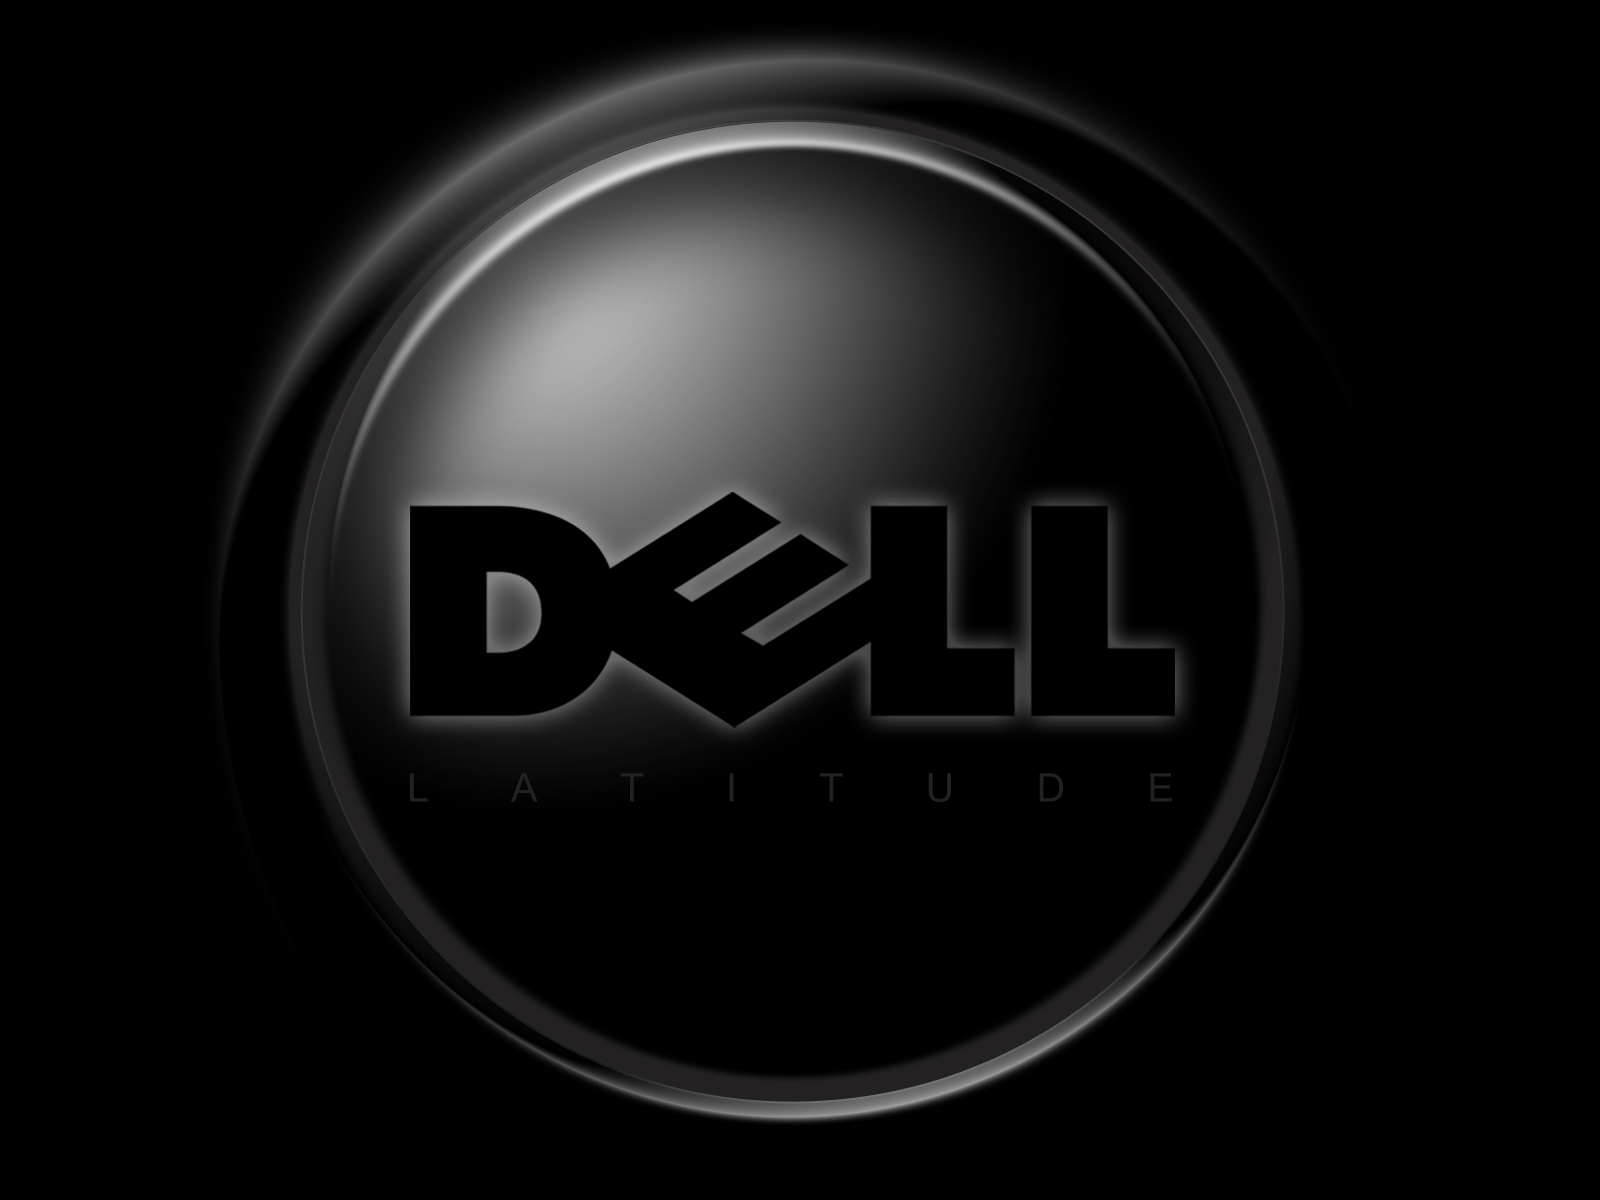 Dell Wallpaper: Free Download Wallpaper